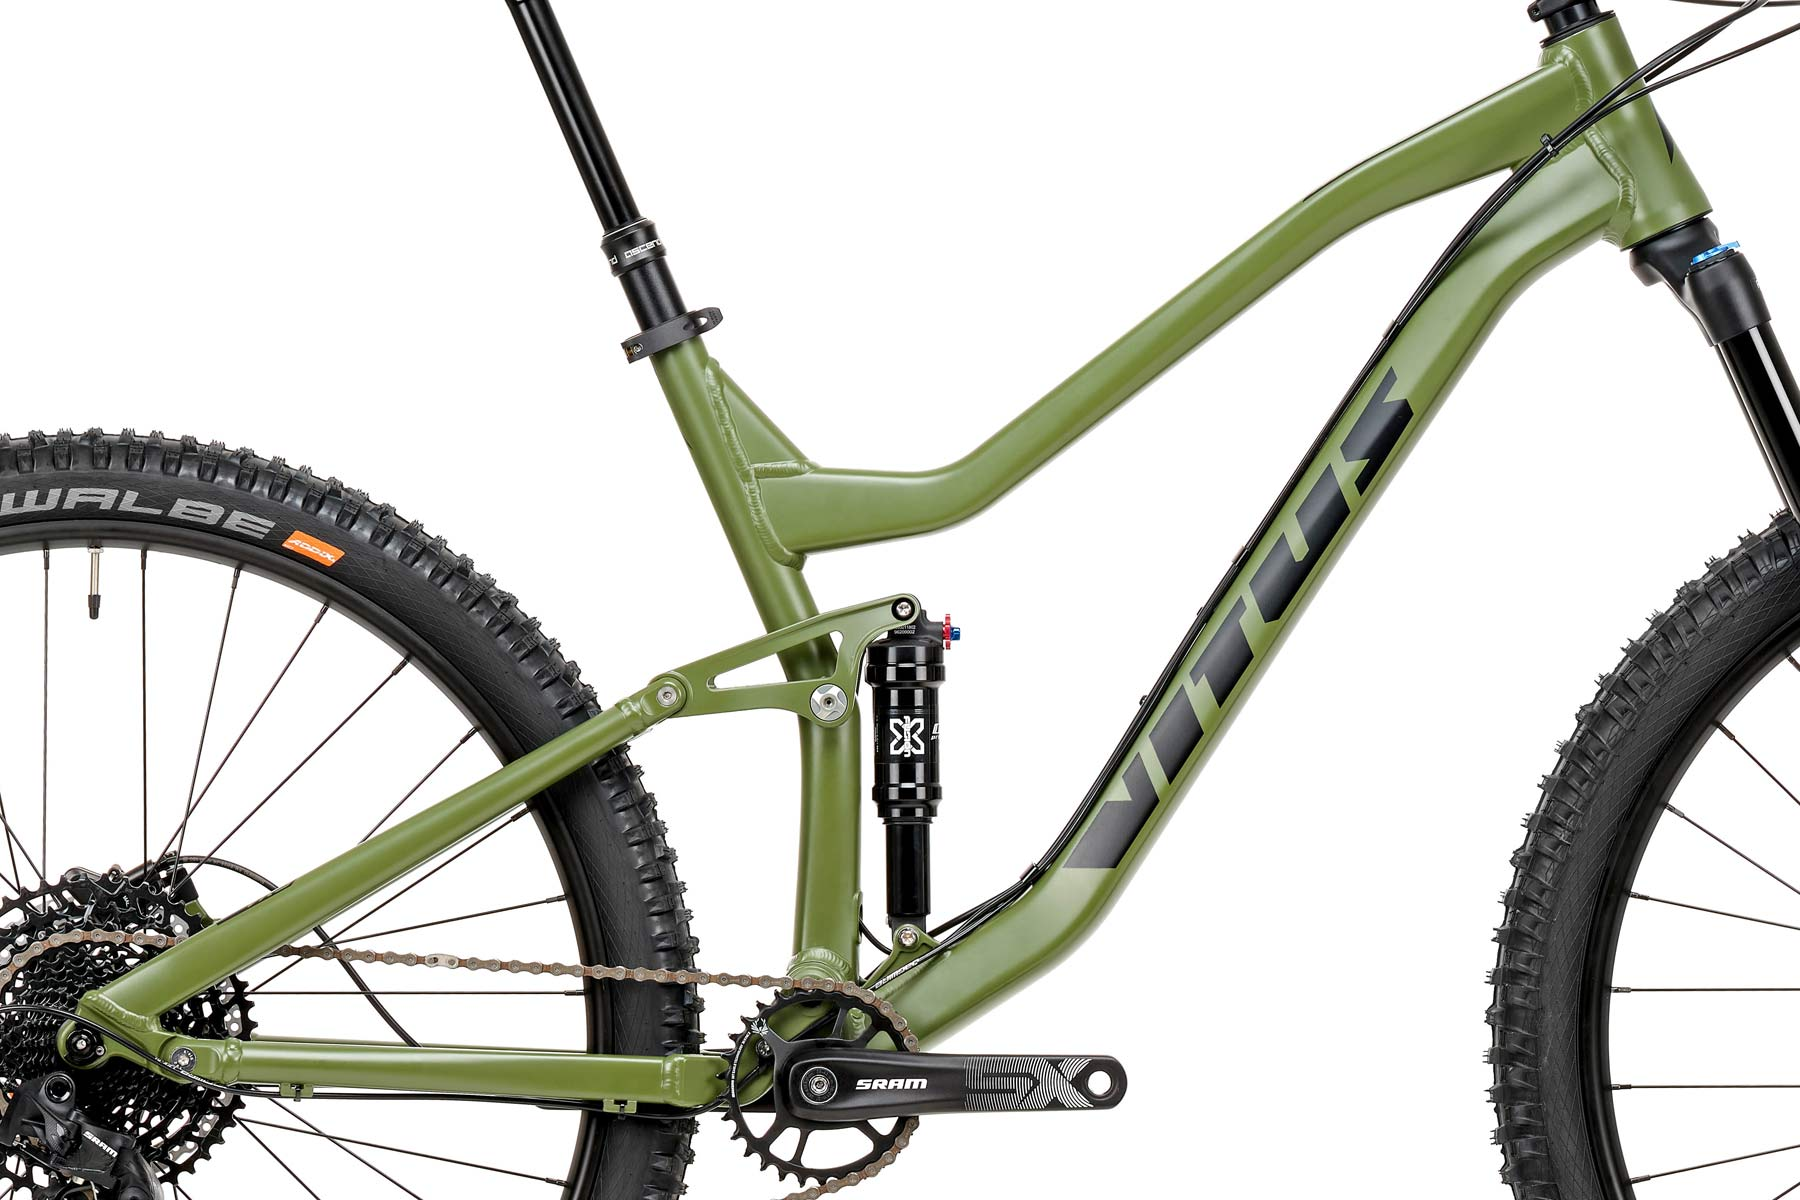 2020 Vitus Mythique trail bike, affordable aluminum alloy aluminium trail mountain bike, 130mm or 140mm travel, 27.5